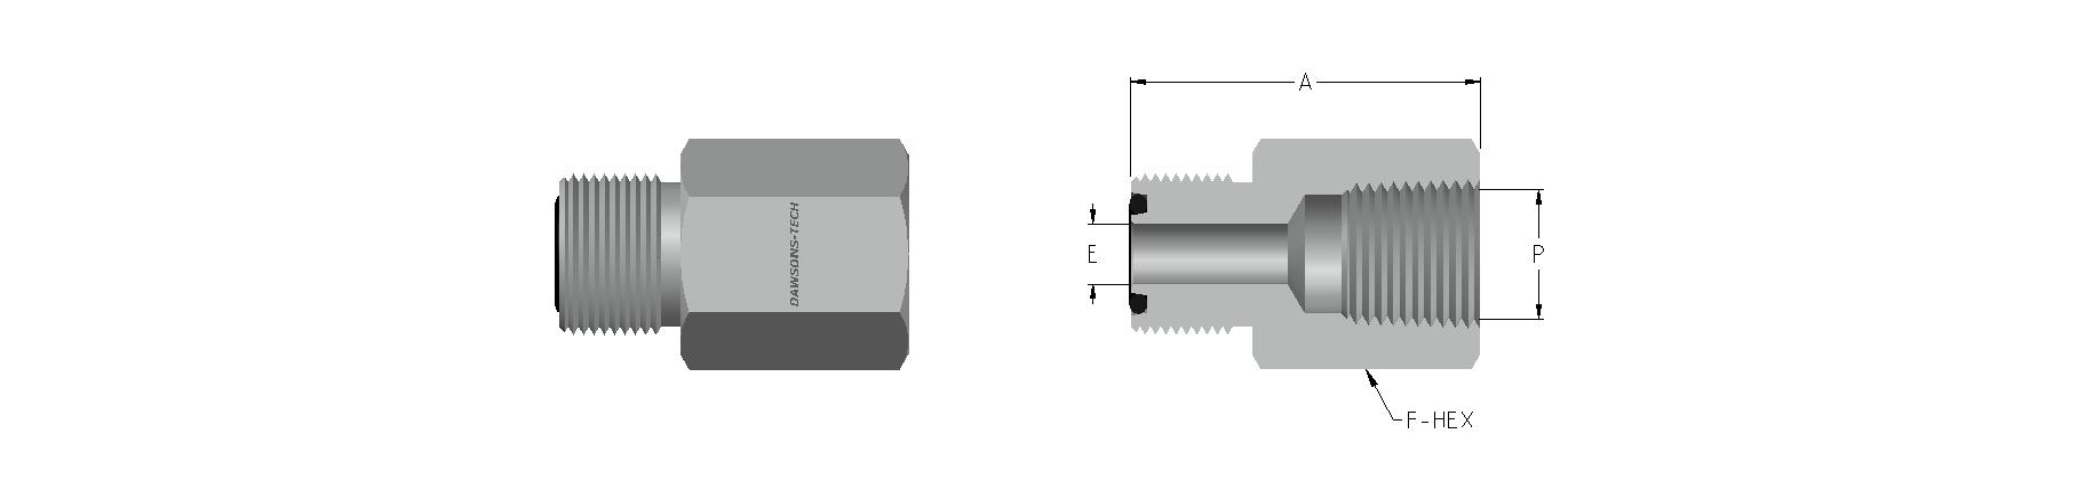 13 Female Connector